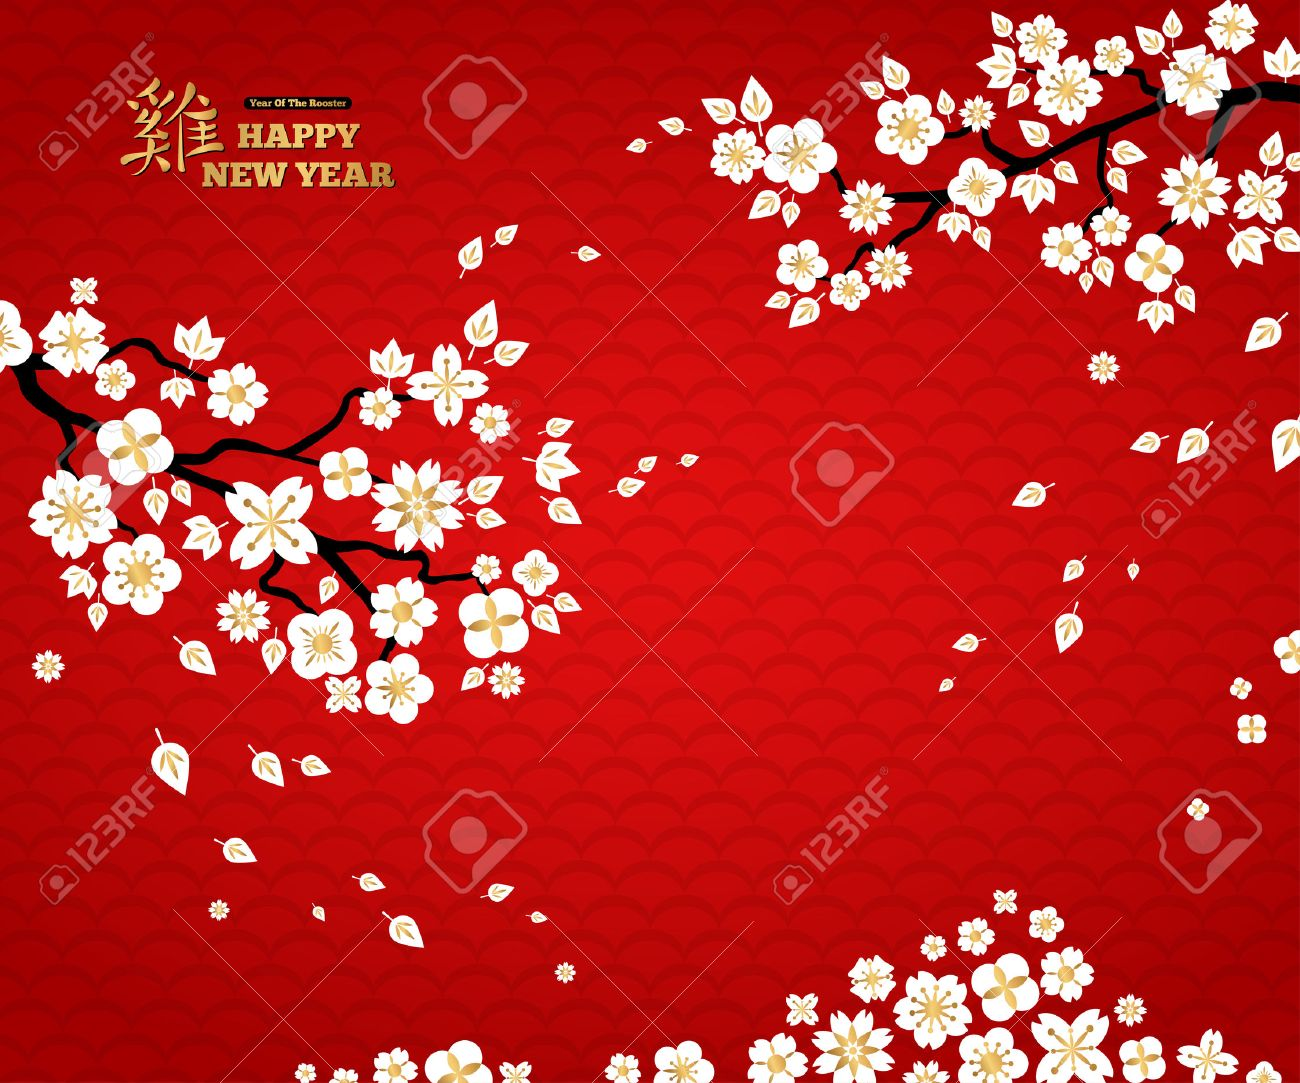 2017 chinese new year greeting card stock vector 64092024